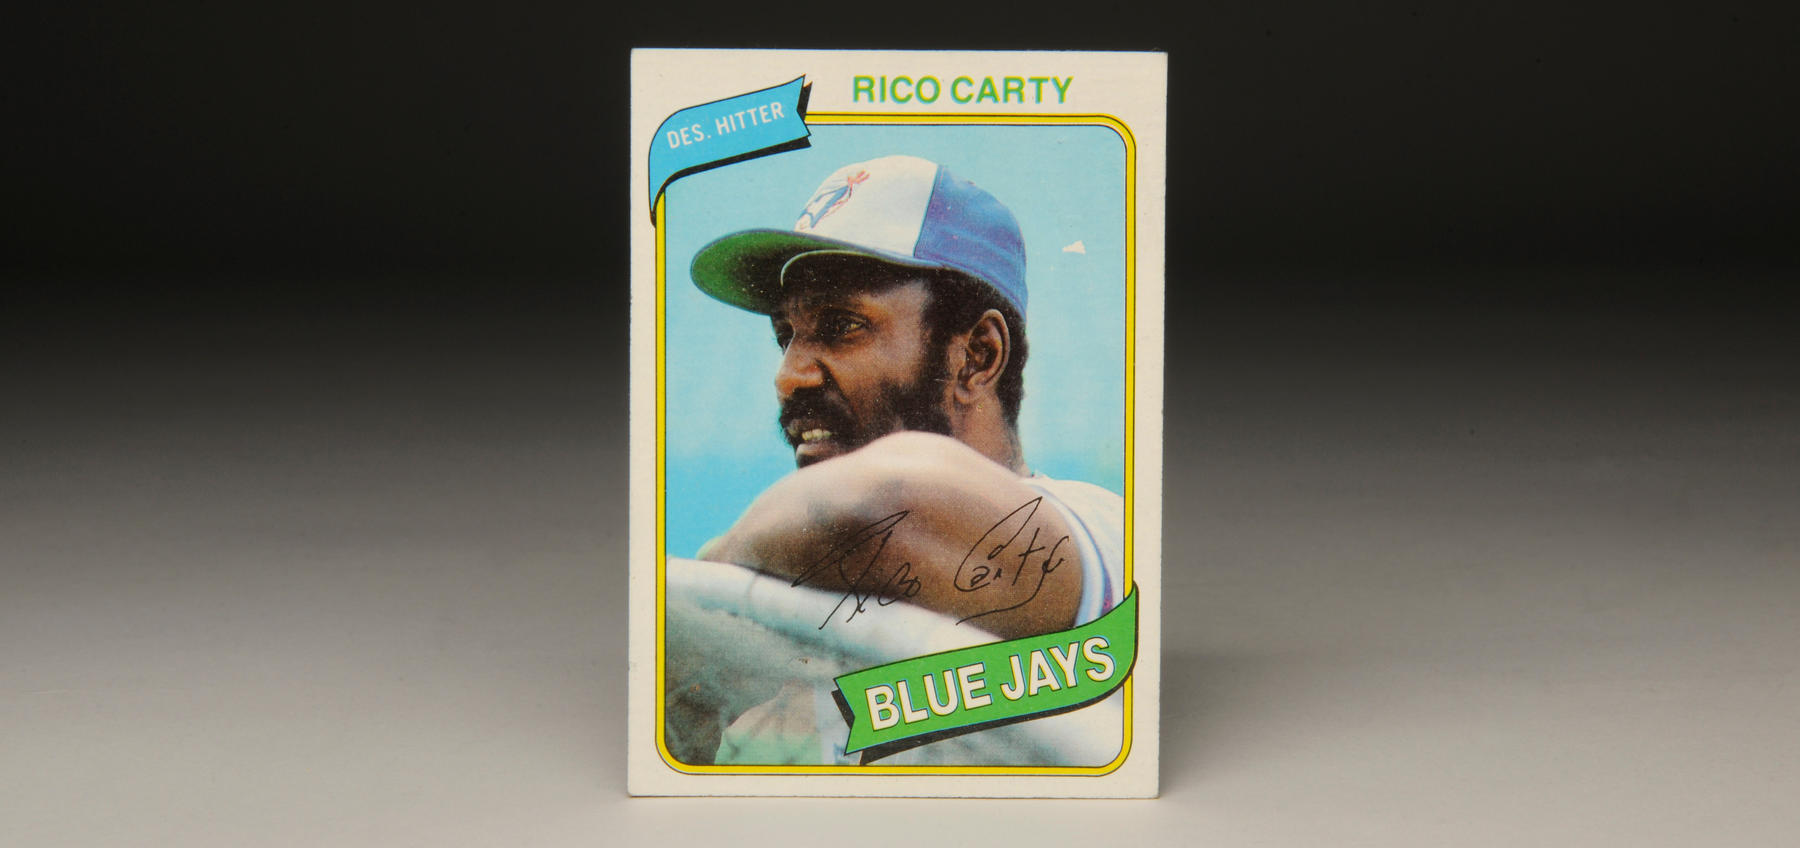 This 1980 Topps card was the last of Rico Carty's career. (Milo Stewart, Jr. / National Baseball Hall of Fame)